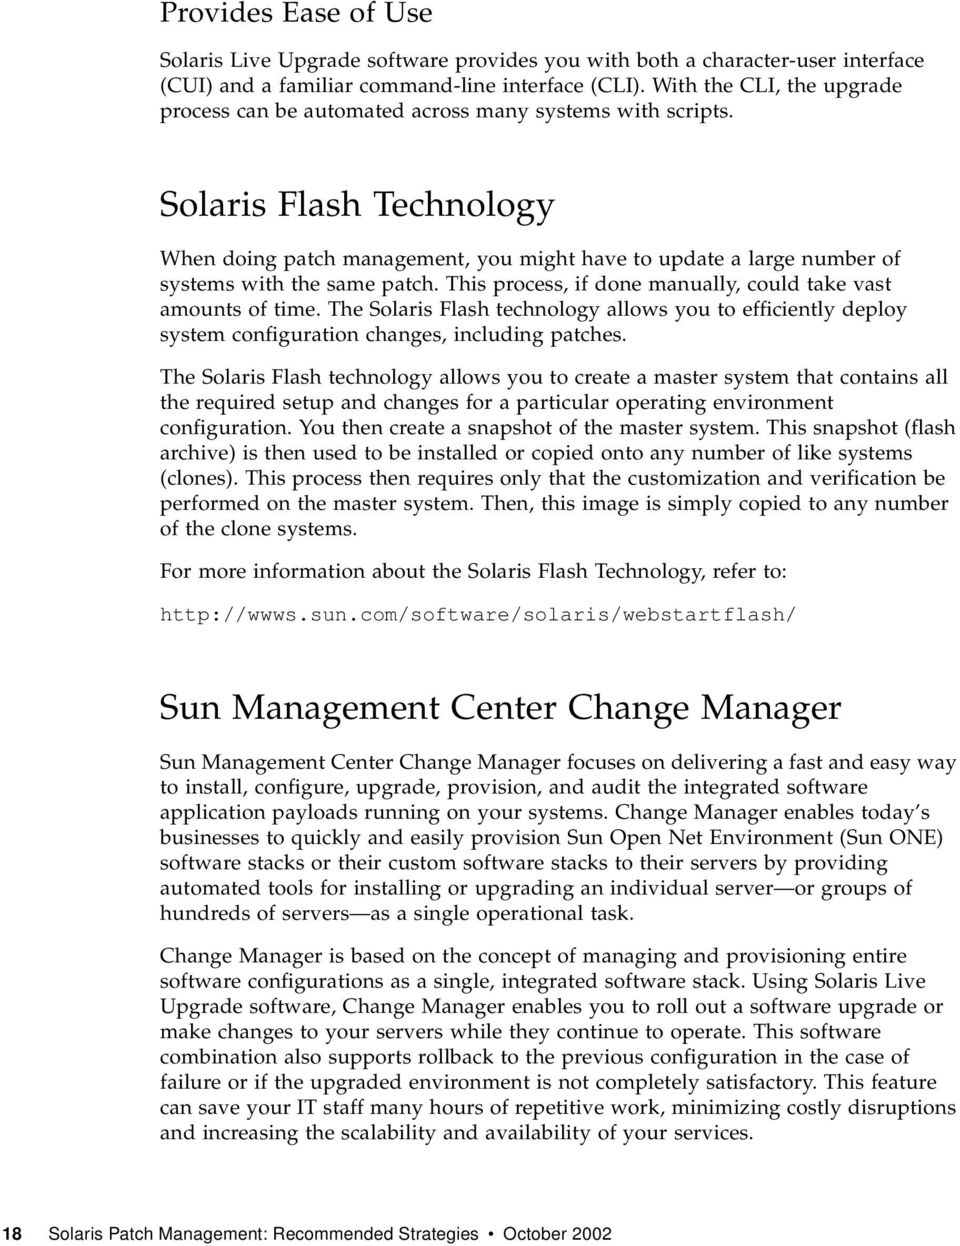 Solaris Flash Technology When doing patch management, you might have to update a large number of systems with the same patch. This process, if done manually, could take vast amounts of time.